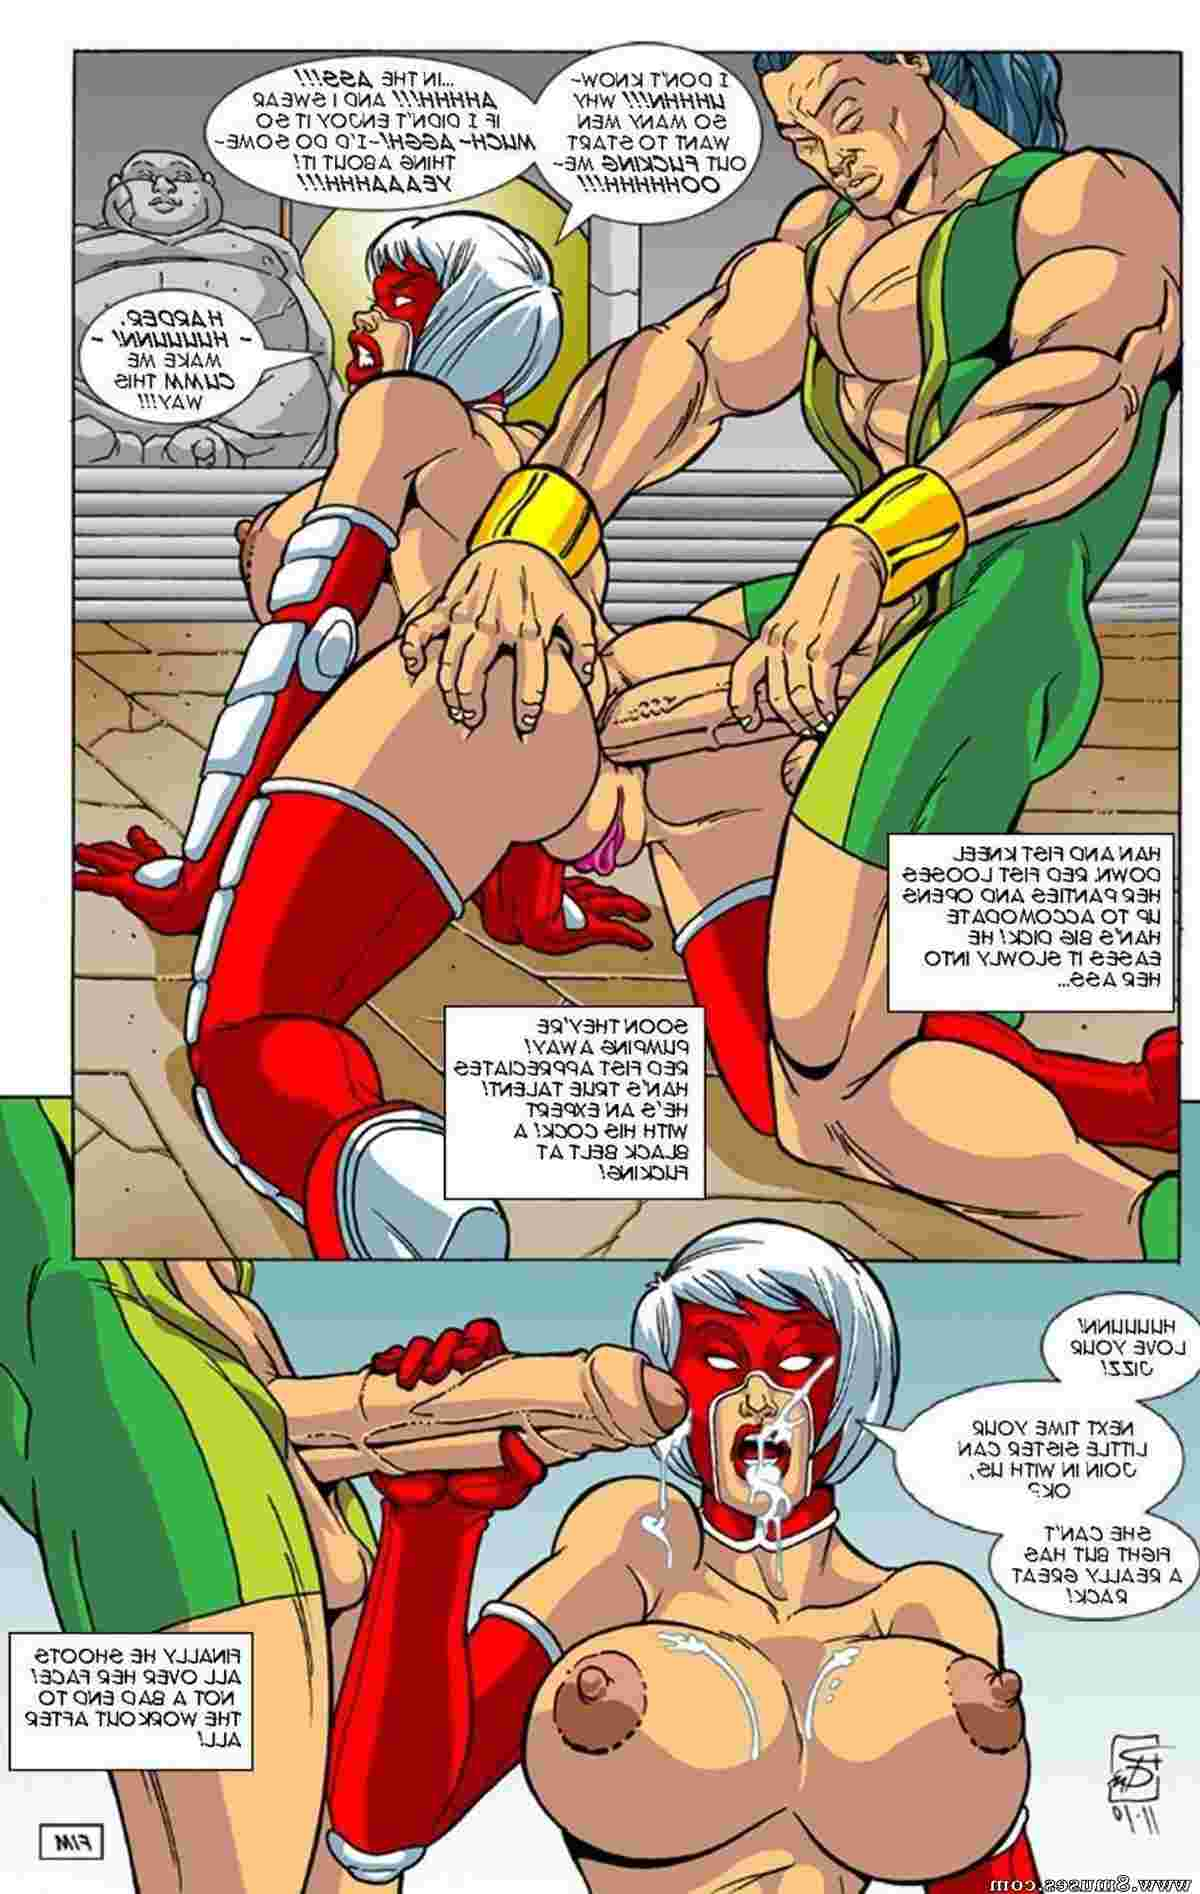 Central-Comics/Monster-Babe-Central/Omega-Fighters Omega_Fighters__8muses_-_Sex_and_Porn_Comics_25.jpg